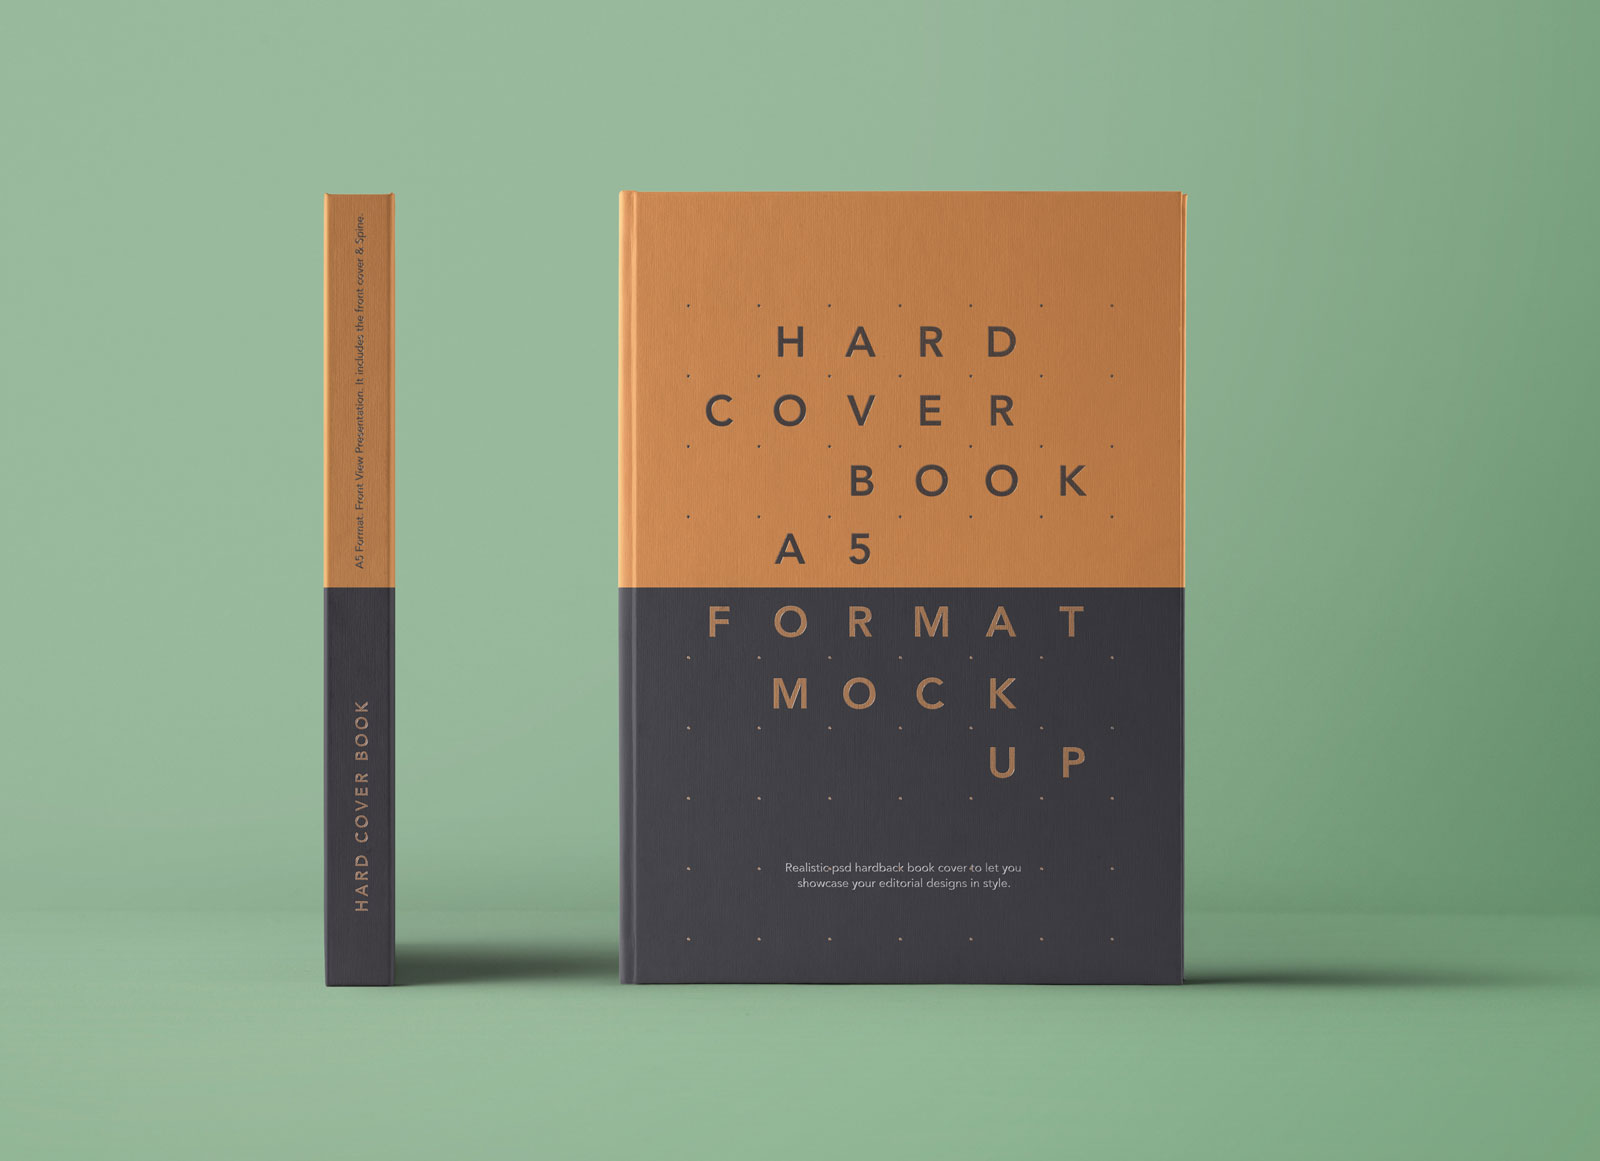 Free-A5-Hardcover-Book-&-Spine-Mockup-PSD-2